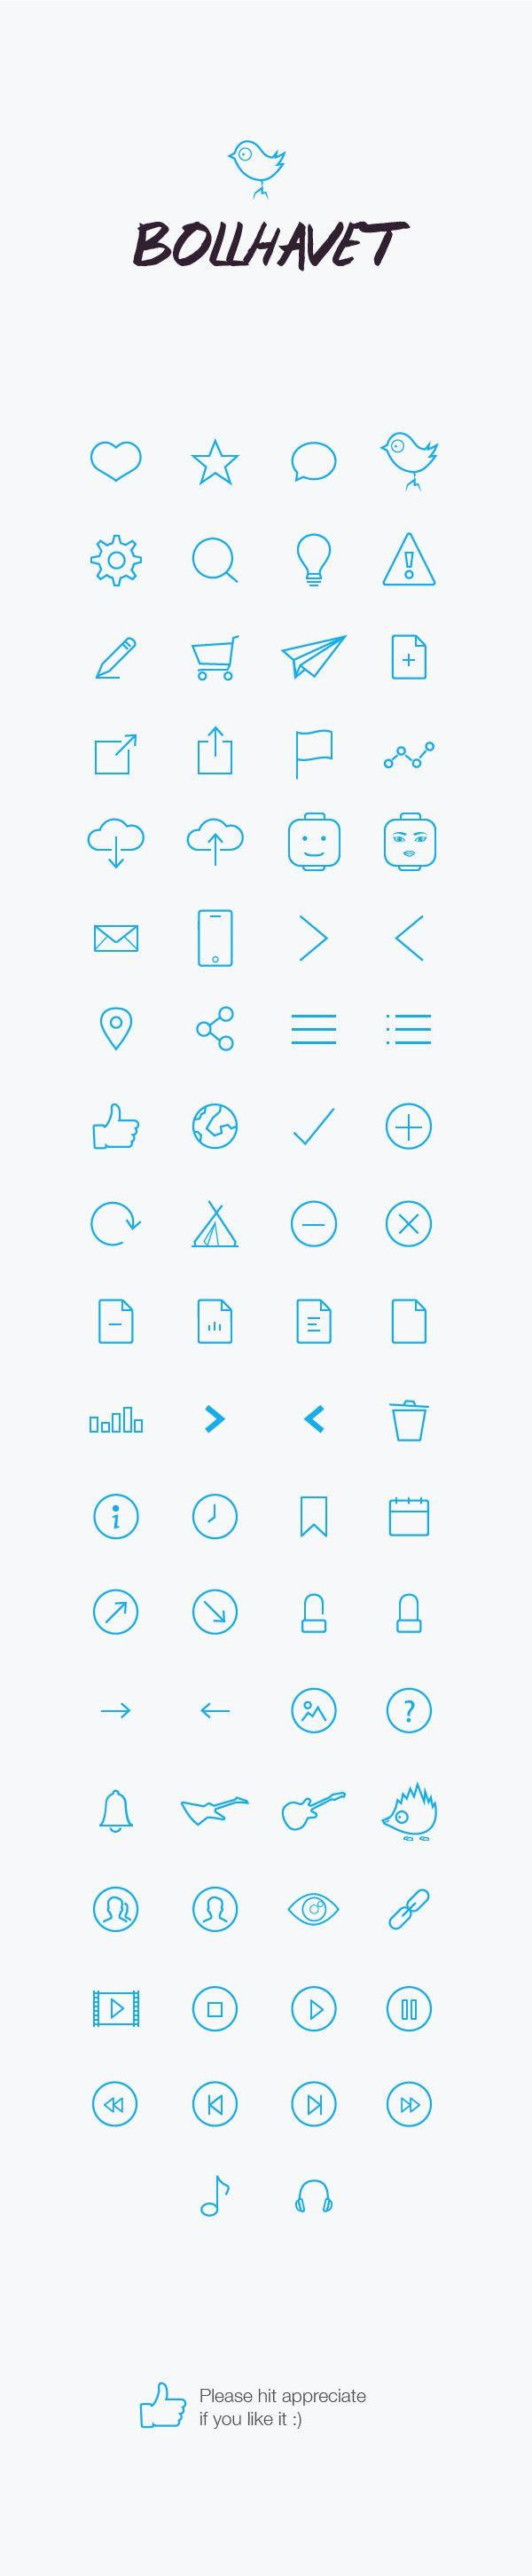 https://www.behance.net/gallery/18922535/Bollhavet-Icon-Package  #icons